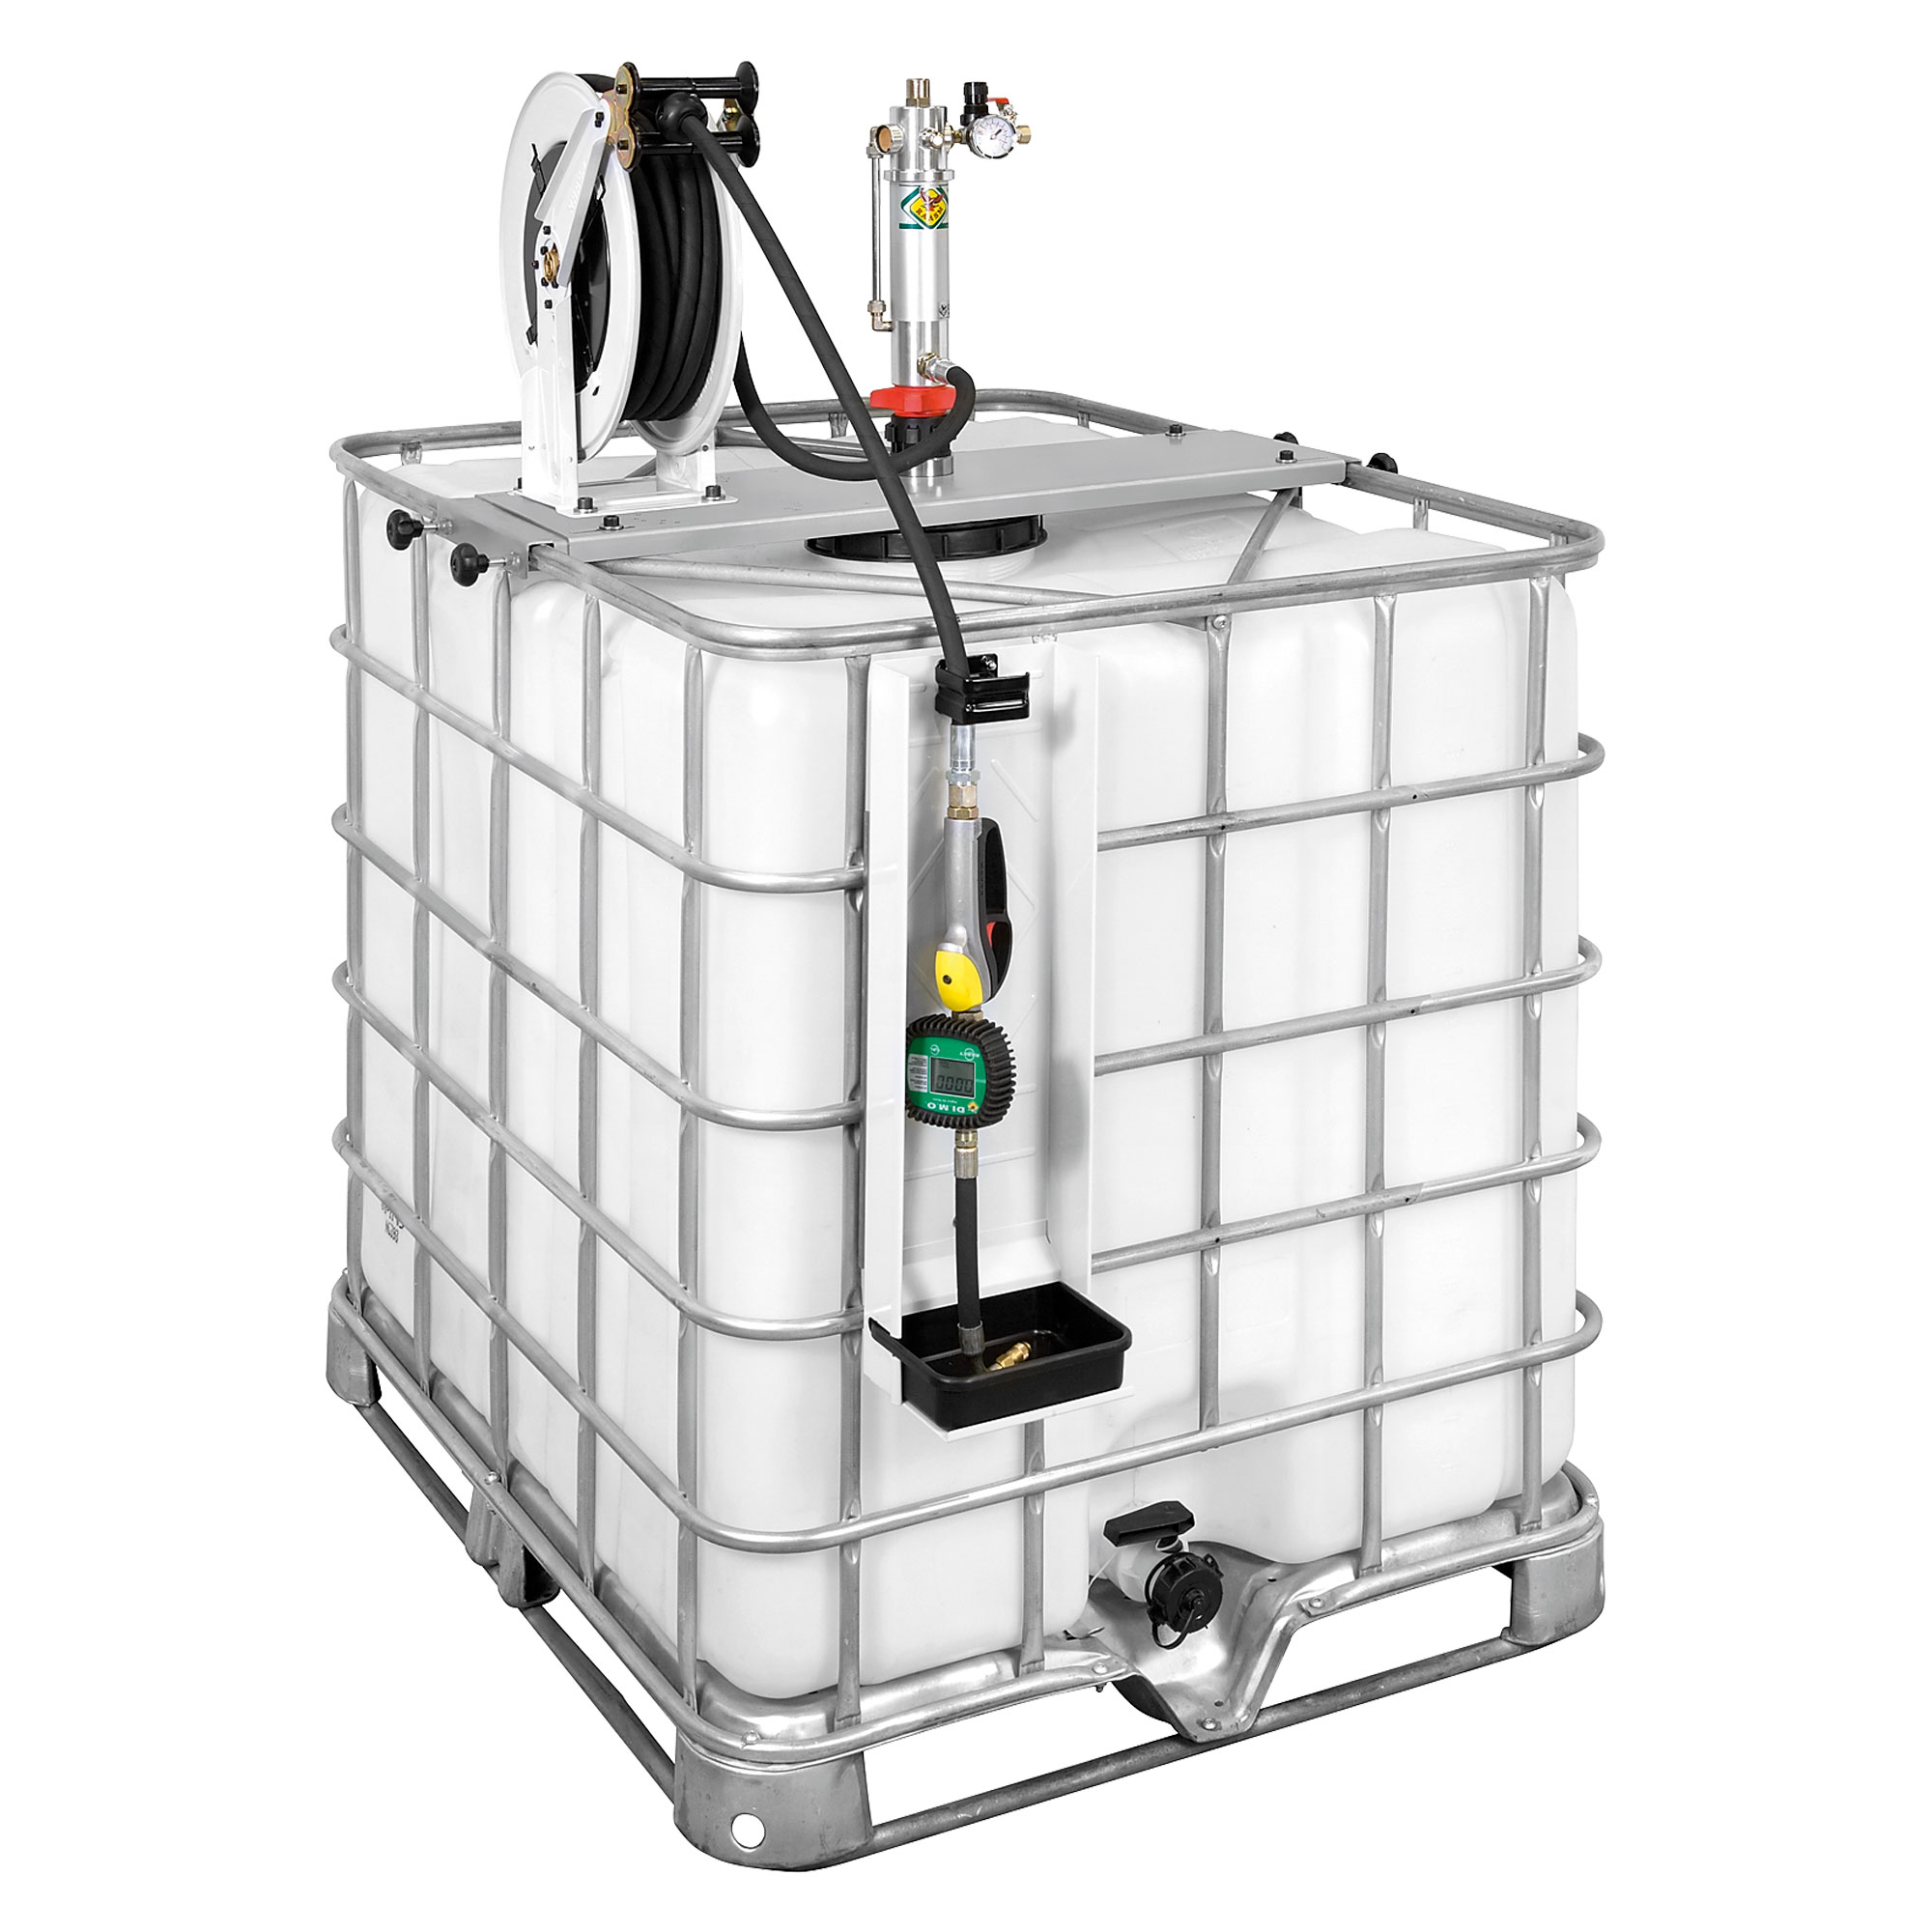 36610 - 3:1 Air Operated IBC Dispensing Kit